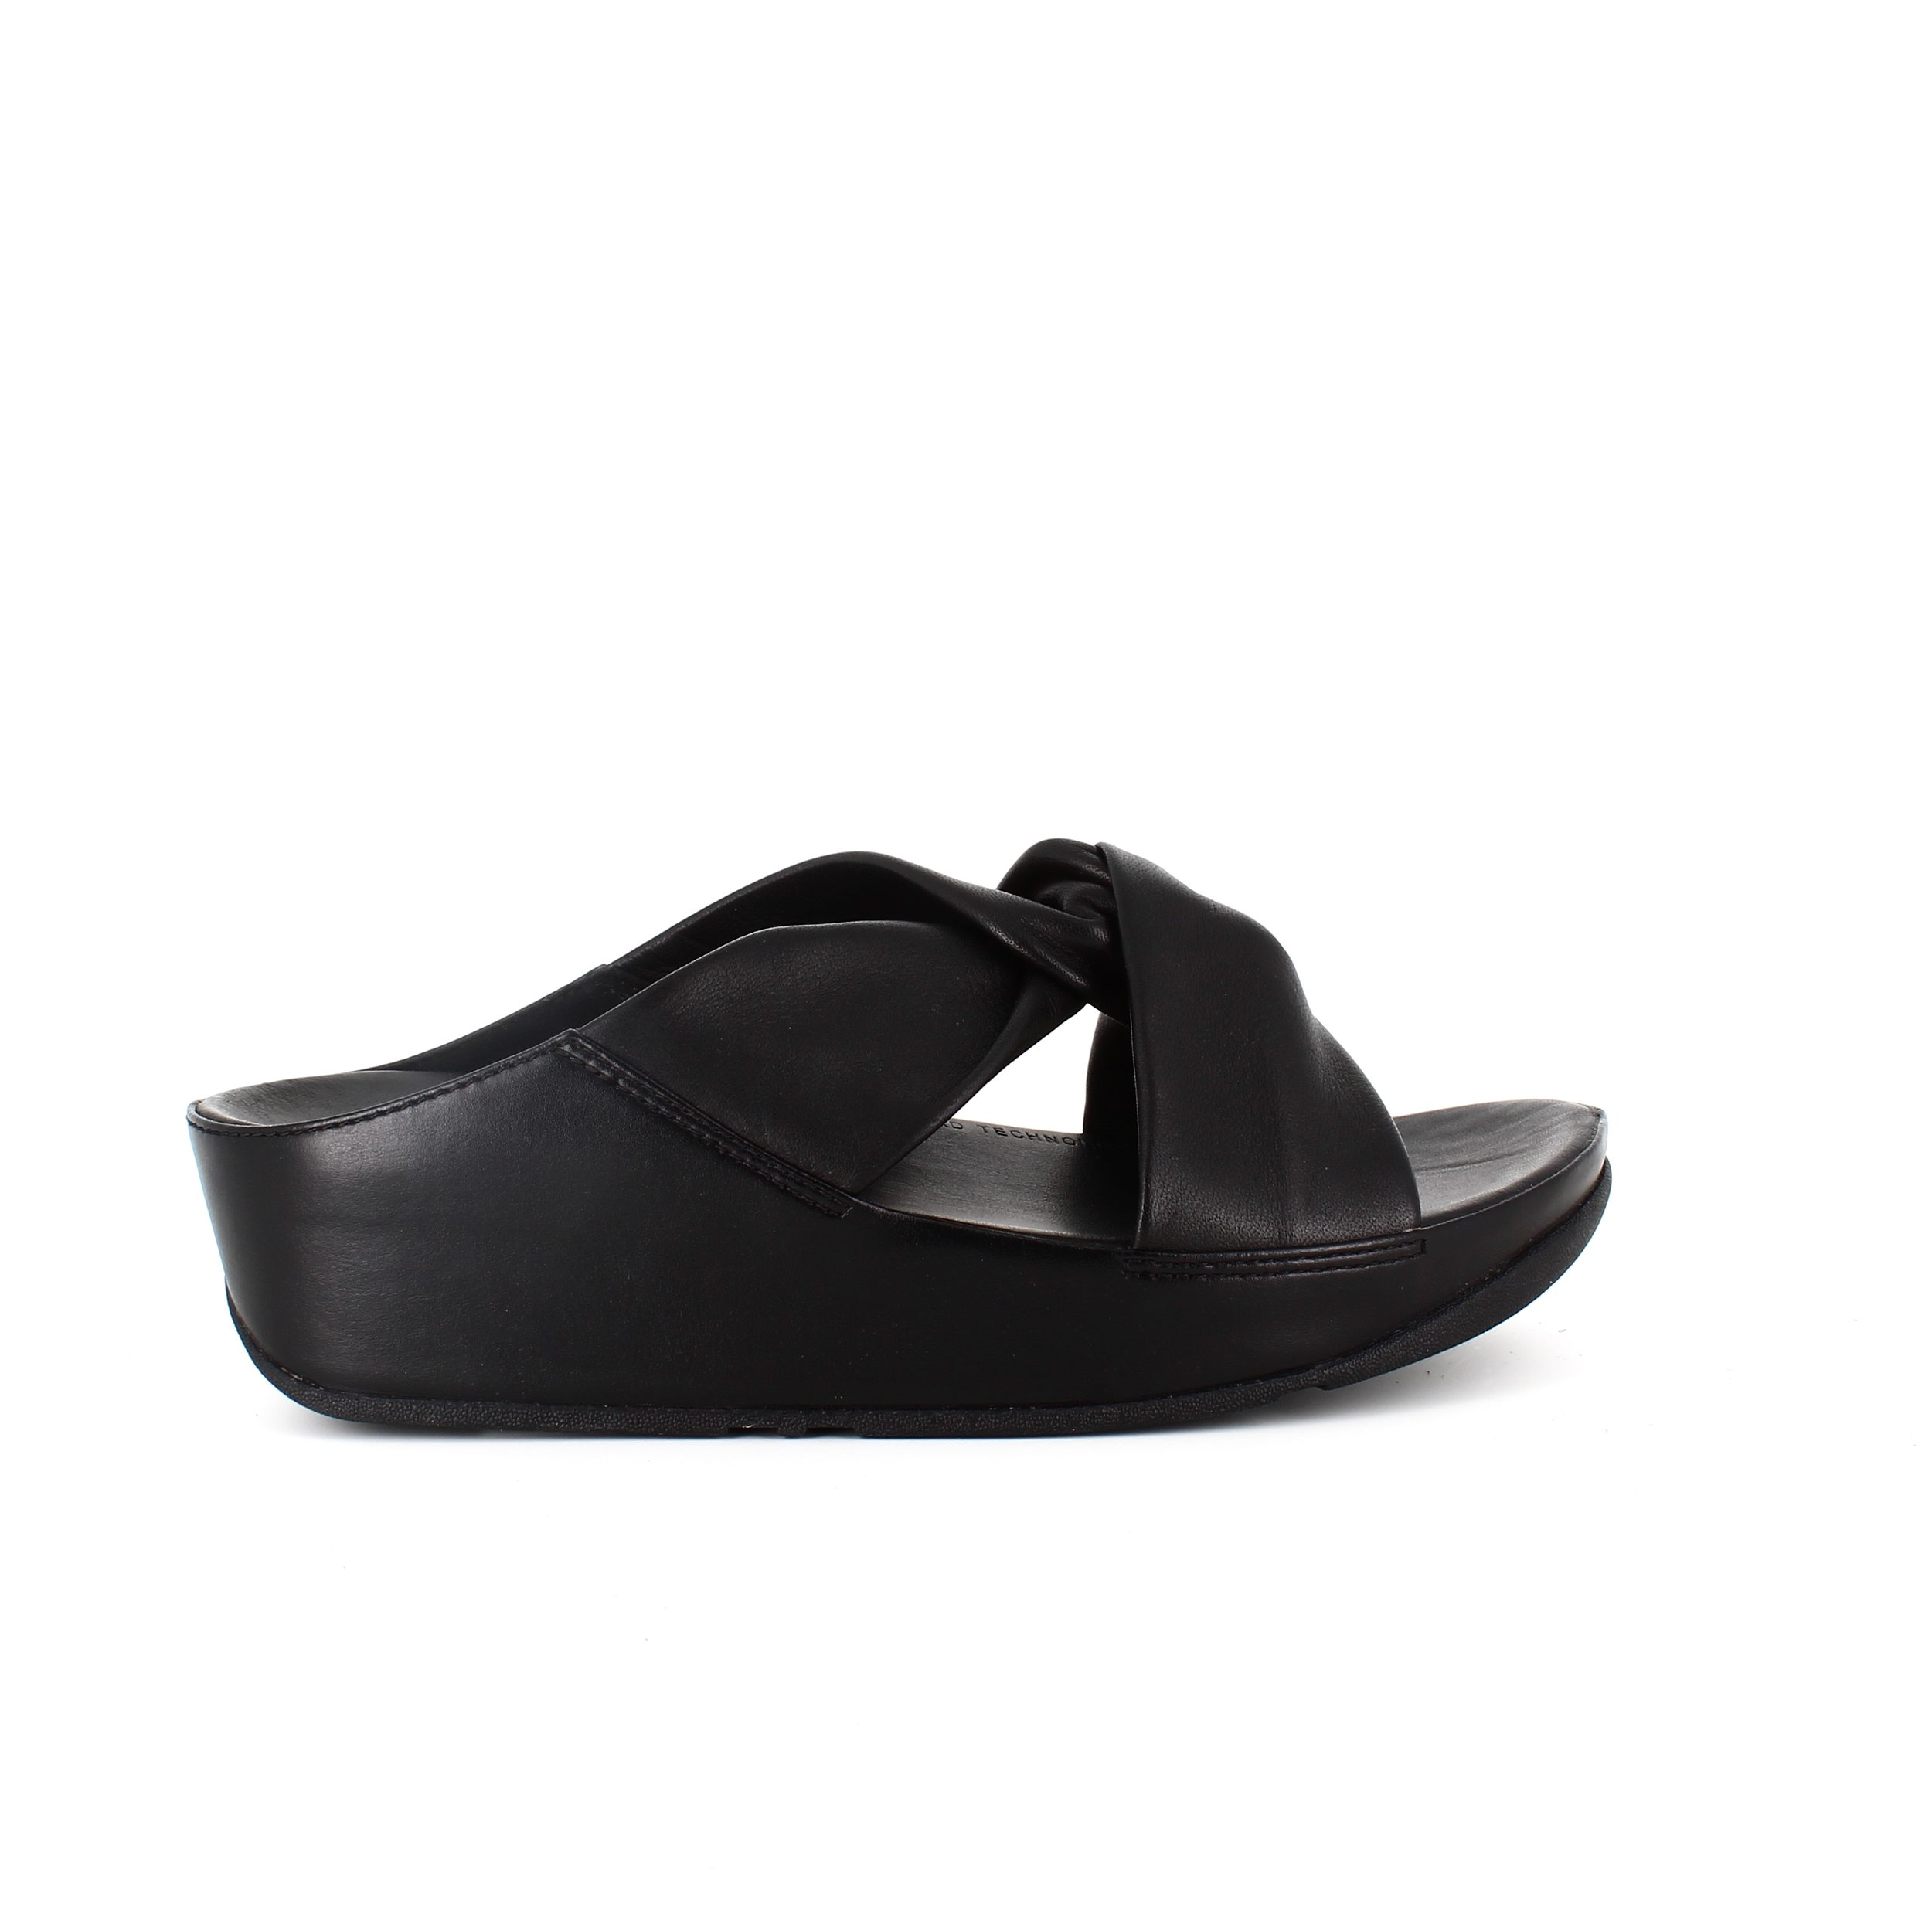 Image of   Fitflop læder sandal twiss slide - 42